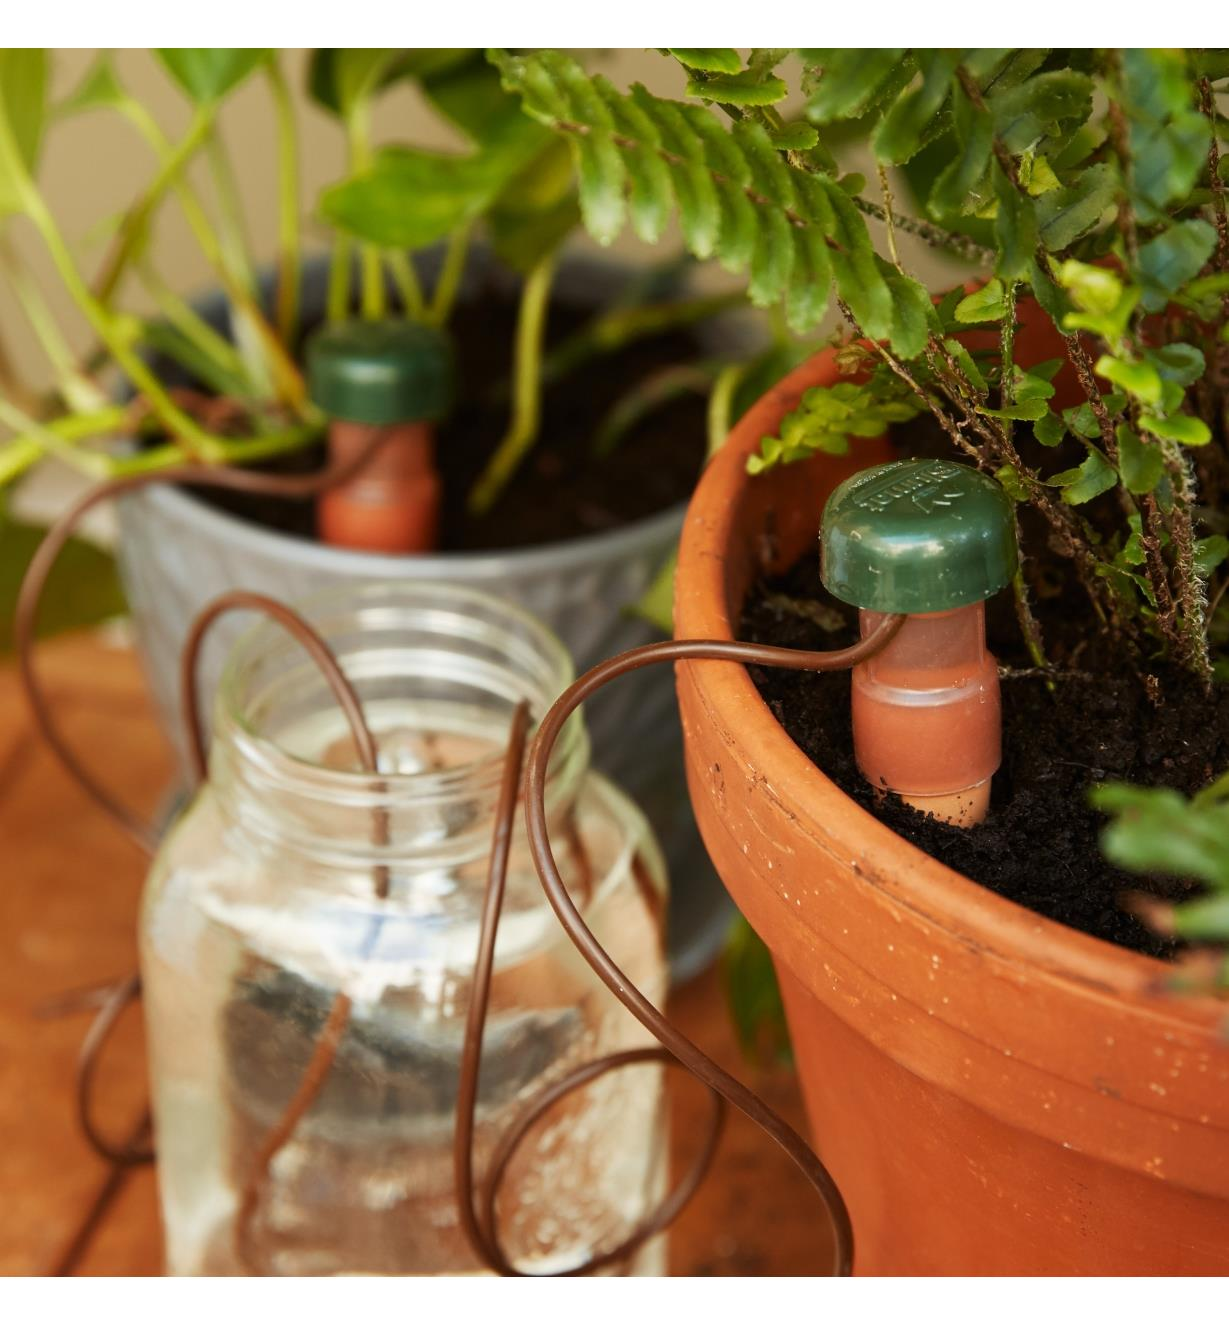 Automatic Plant Waterers inserted in two plant pots with hoses placed in a jar of water